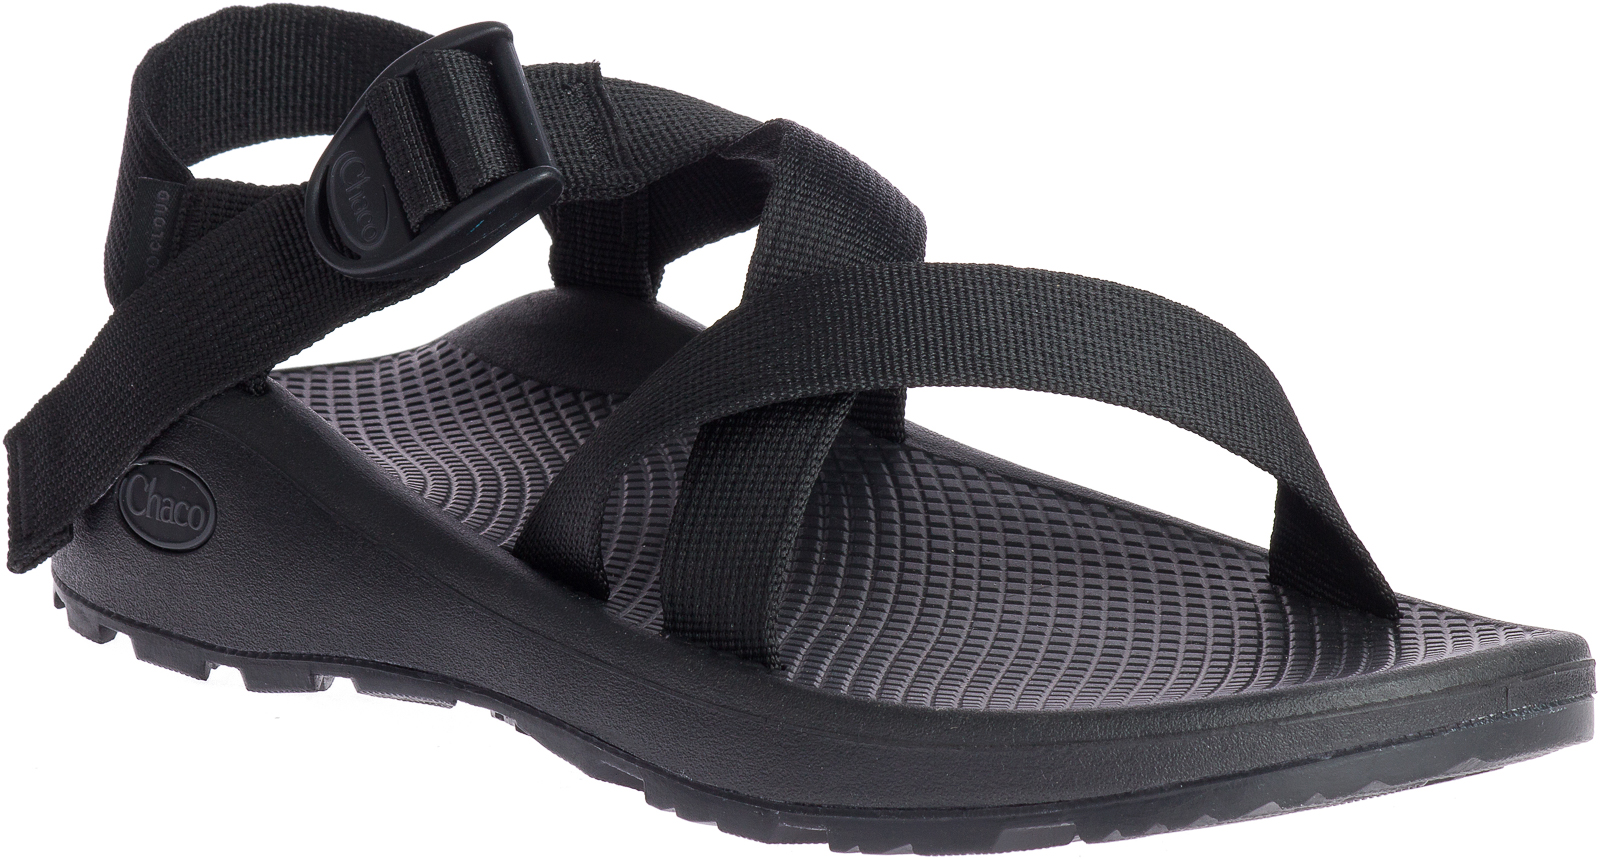 Chaco Z/cloud (m) - Solid Black Heren